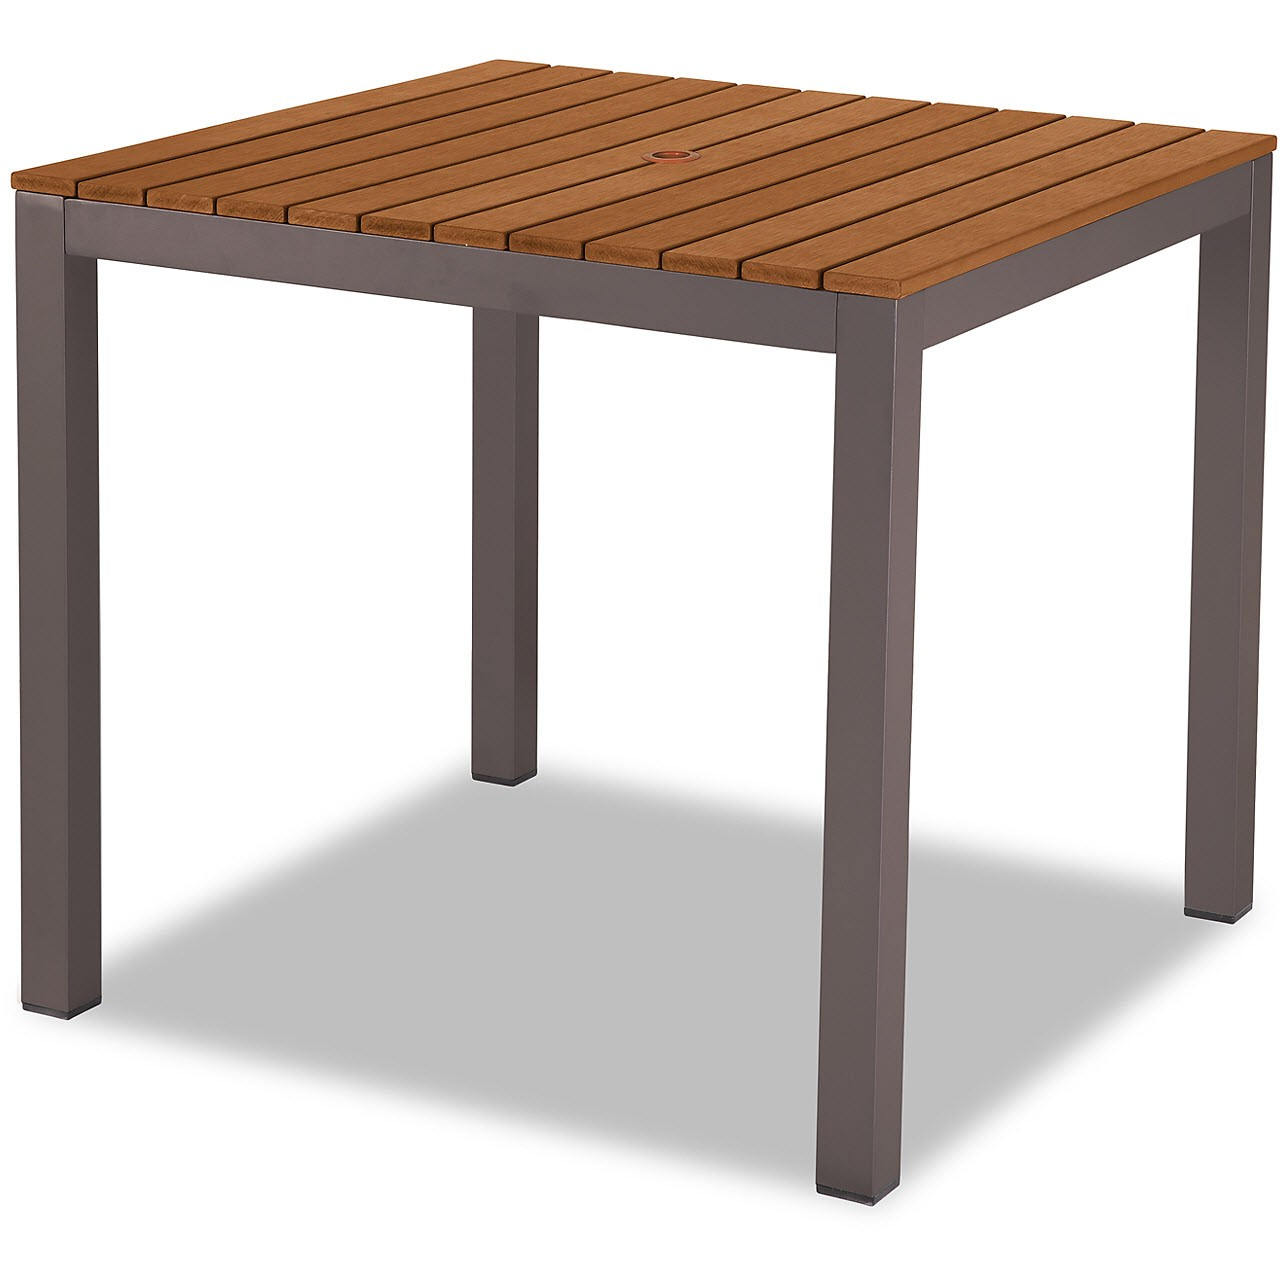 Aluminum Patio Table In Rust Color Finish With Plastic